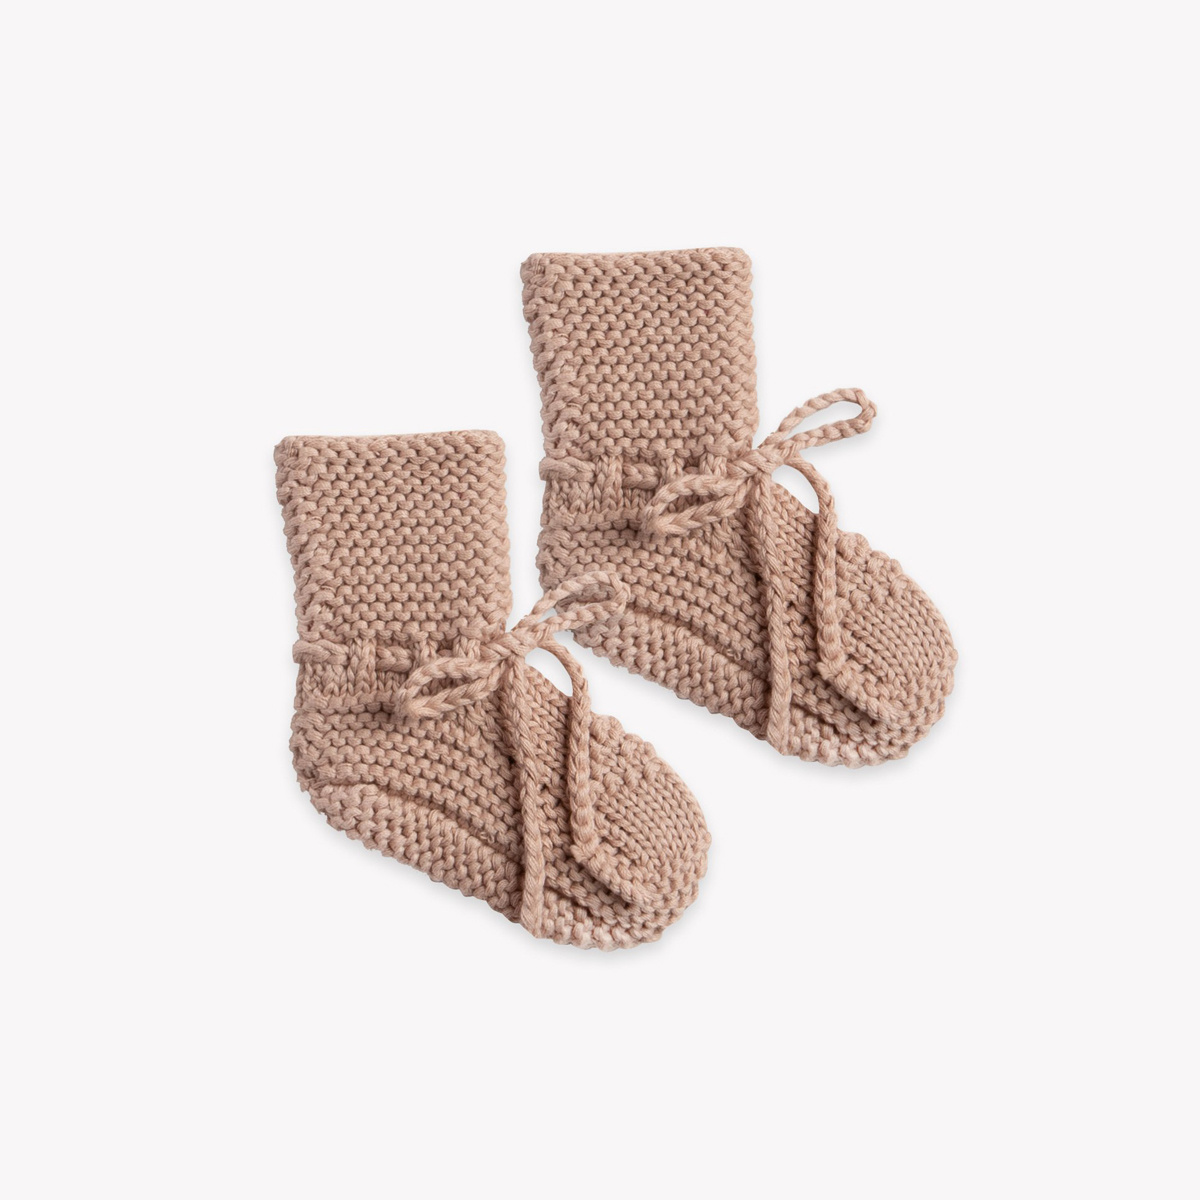 Quincy Mae - QM Quincy Mae - Knit Booties in Petal